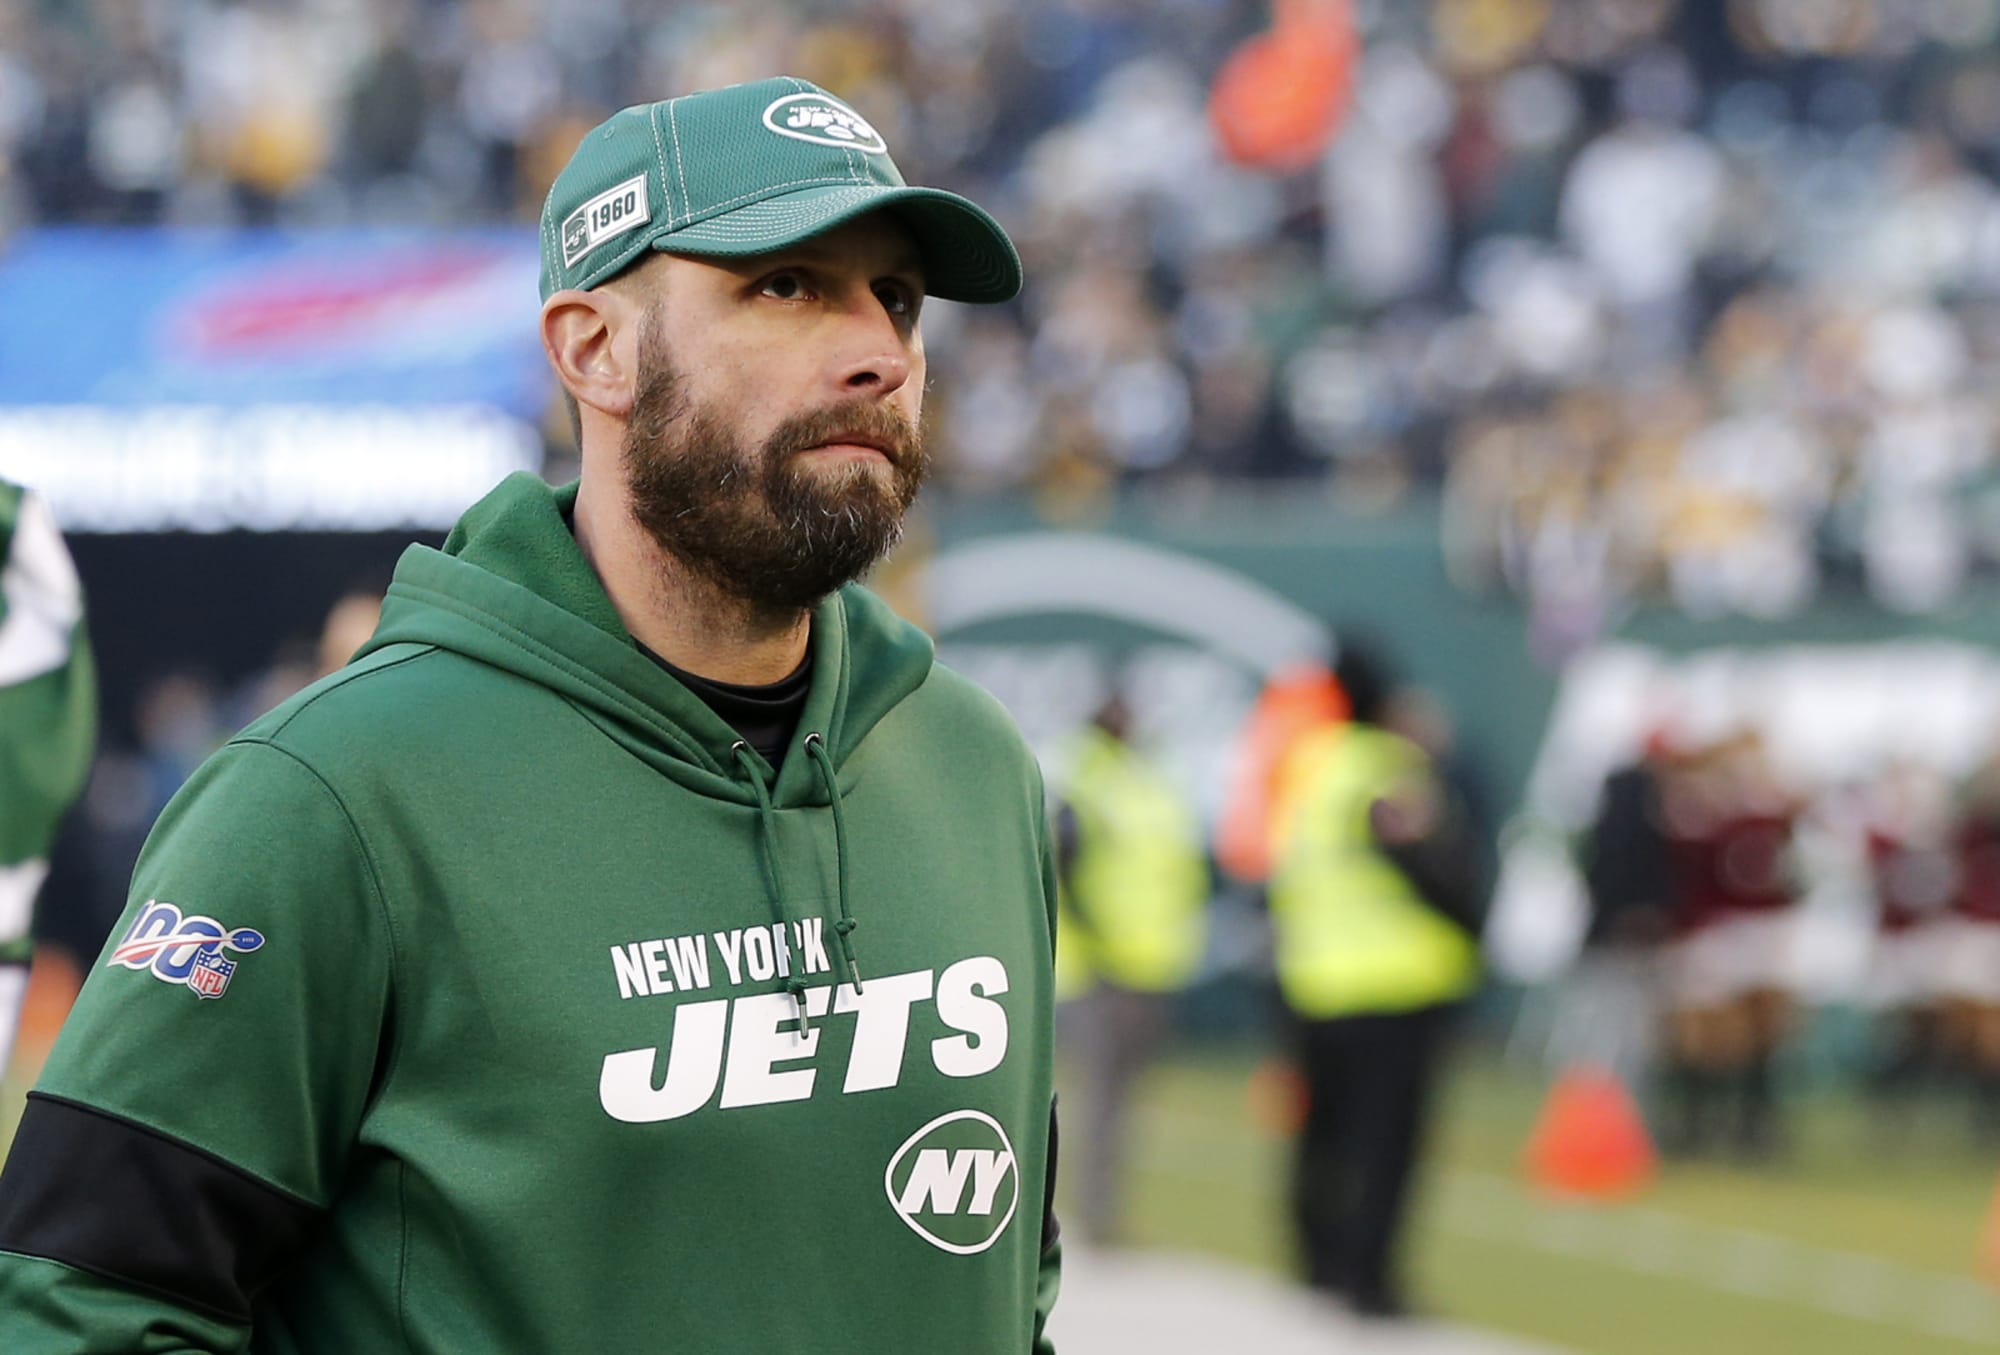 Adam Gase could be in trouble if Jets have a bad week